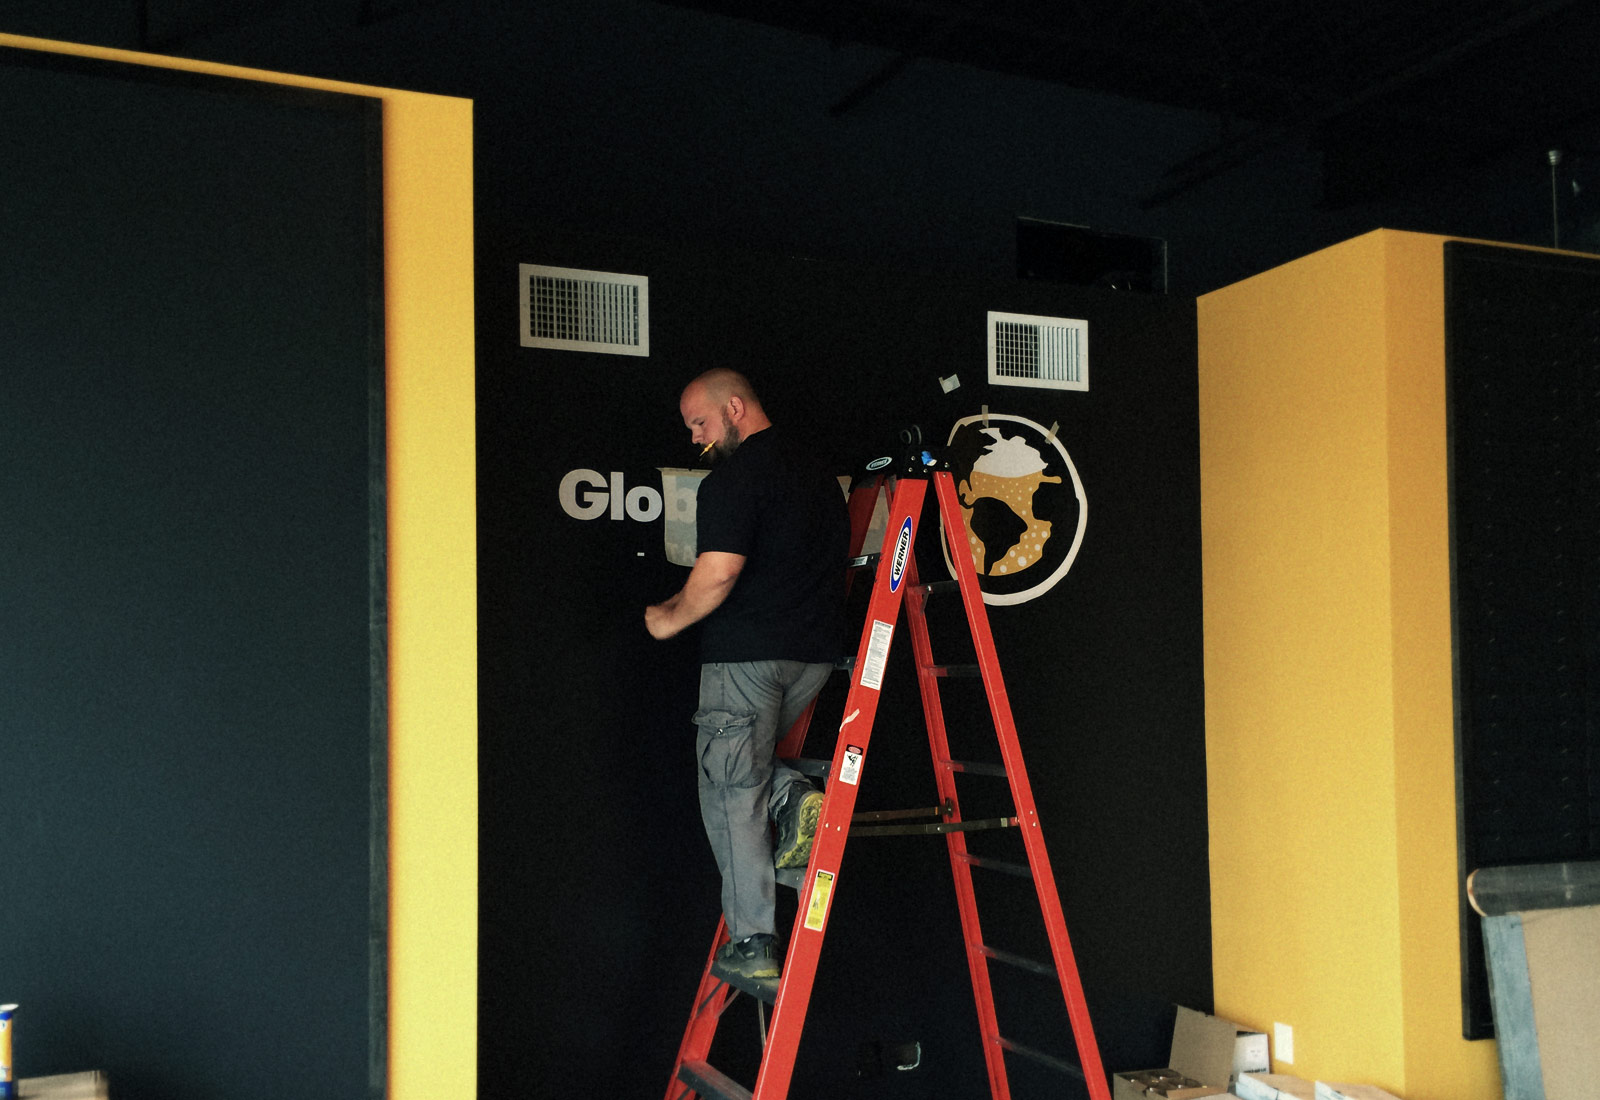 Global Brew Logo Application on Wall